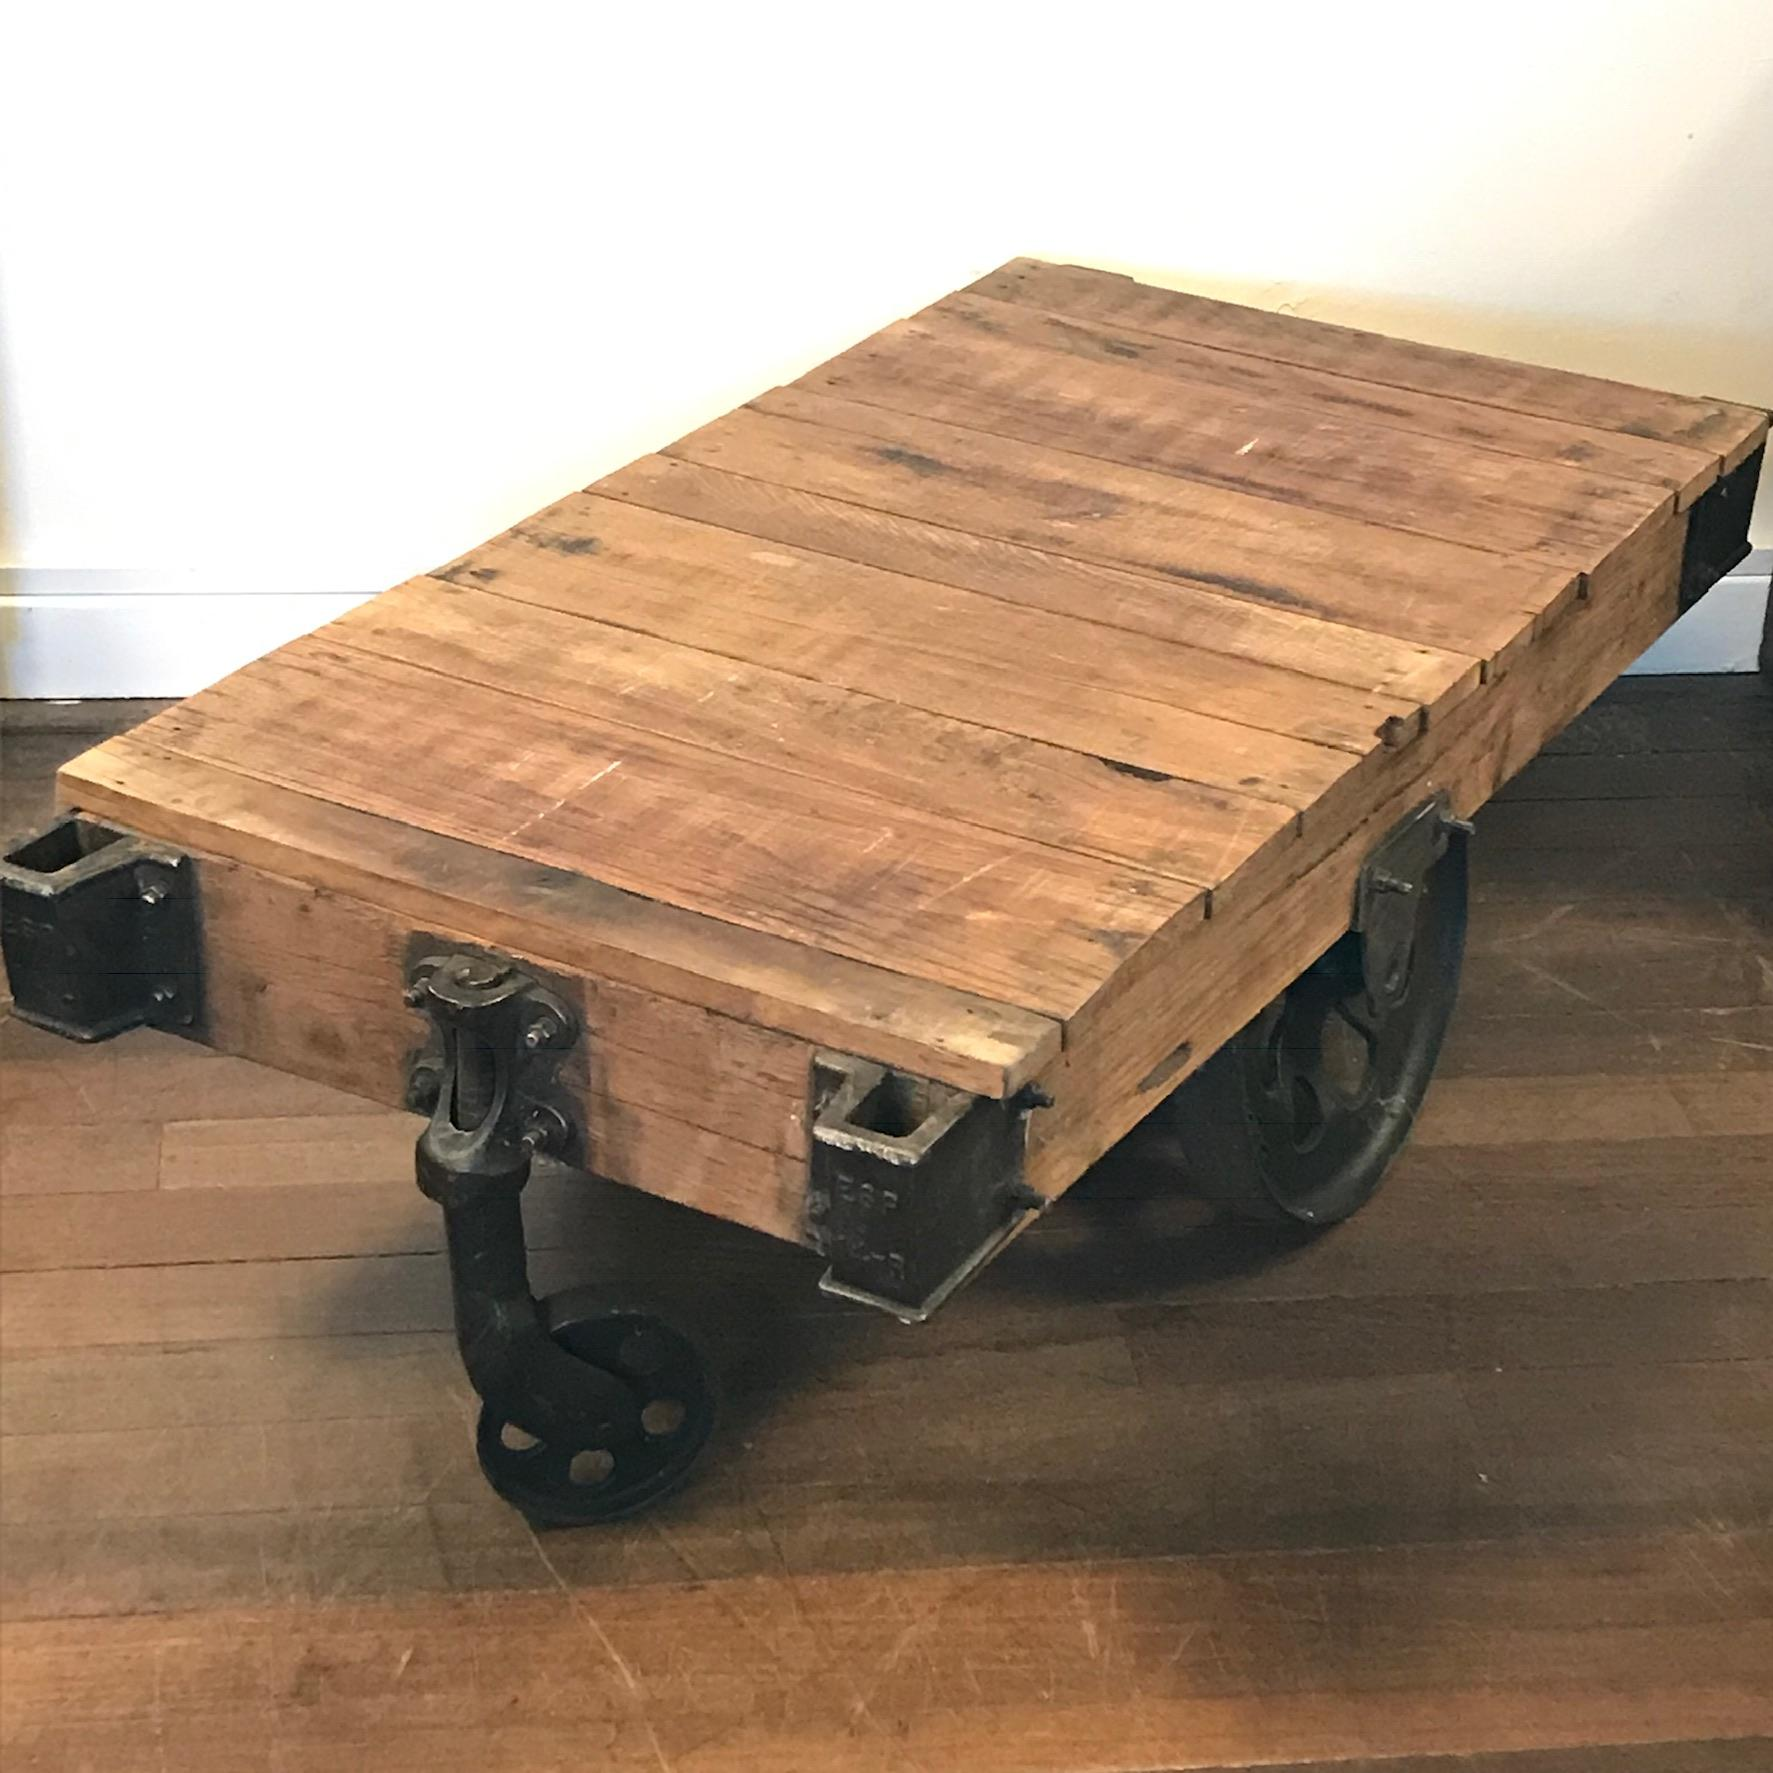 Upcycled Vintage Industrial Trolley Coffee Table